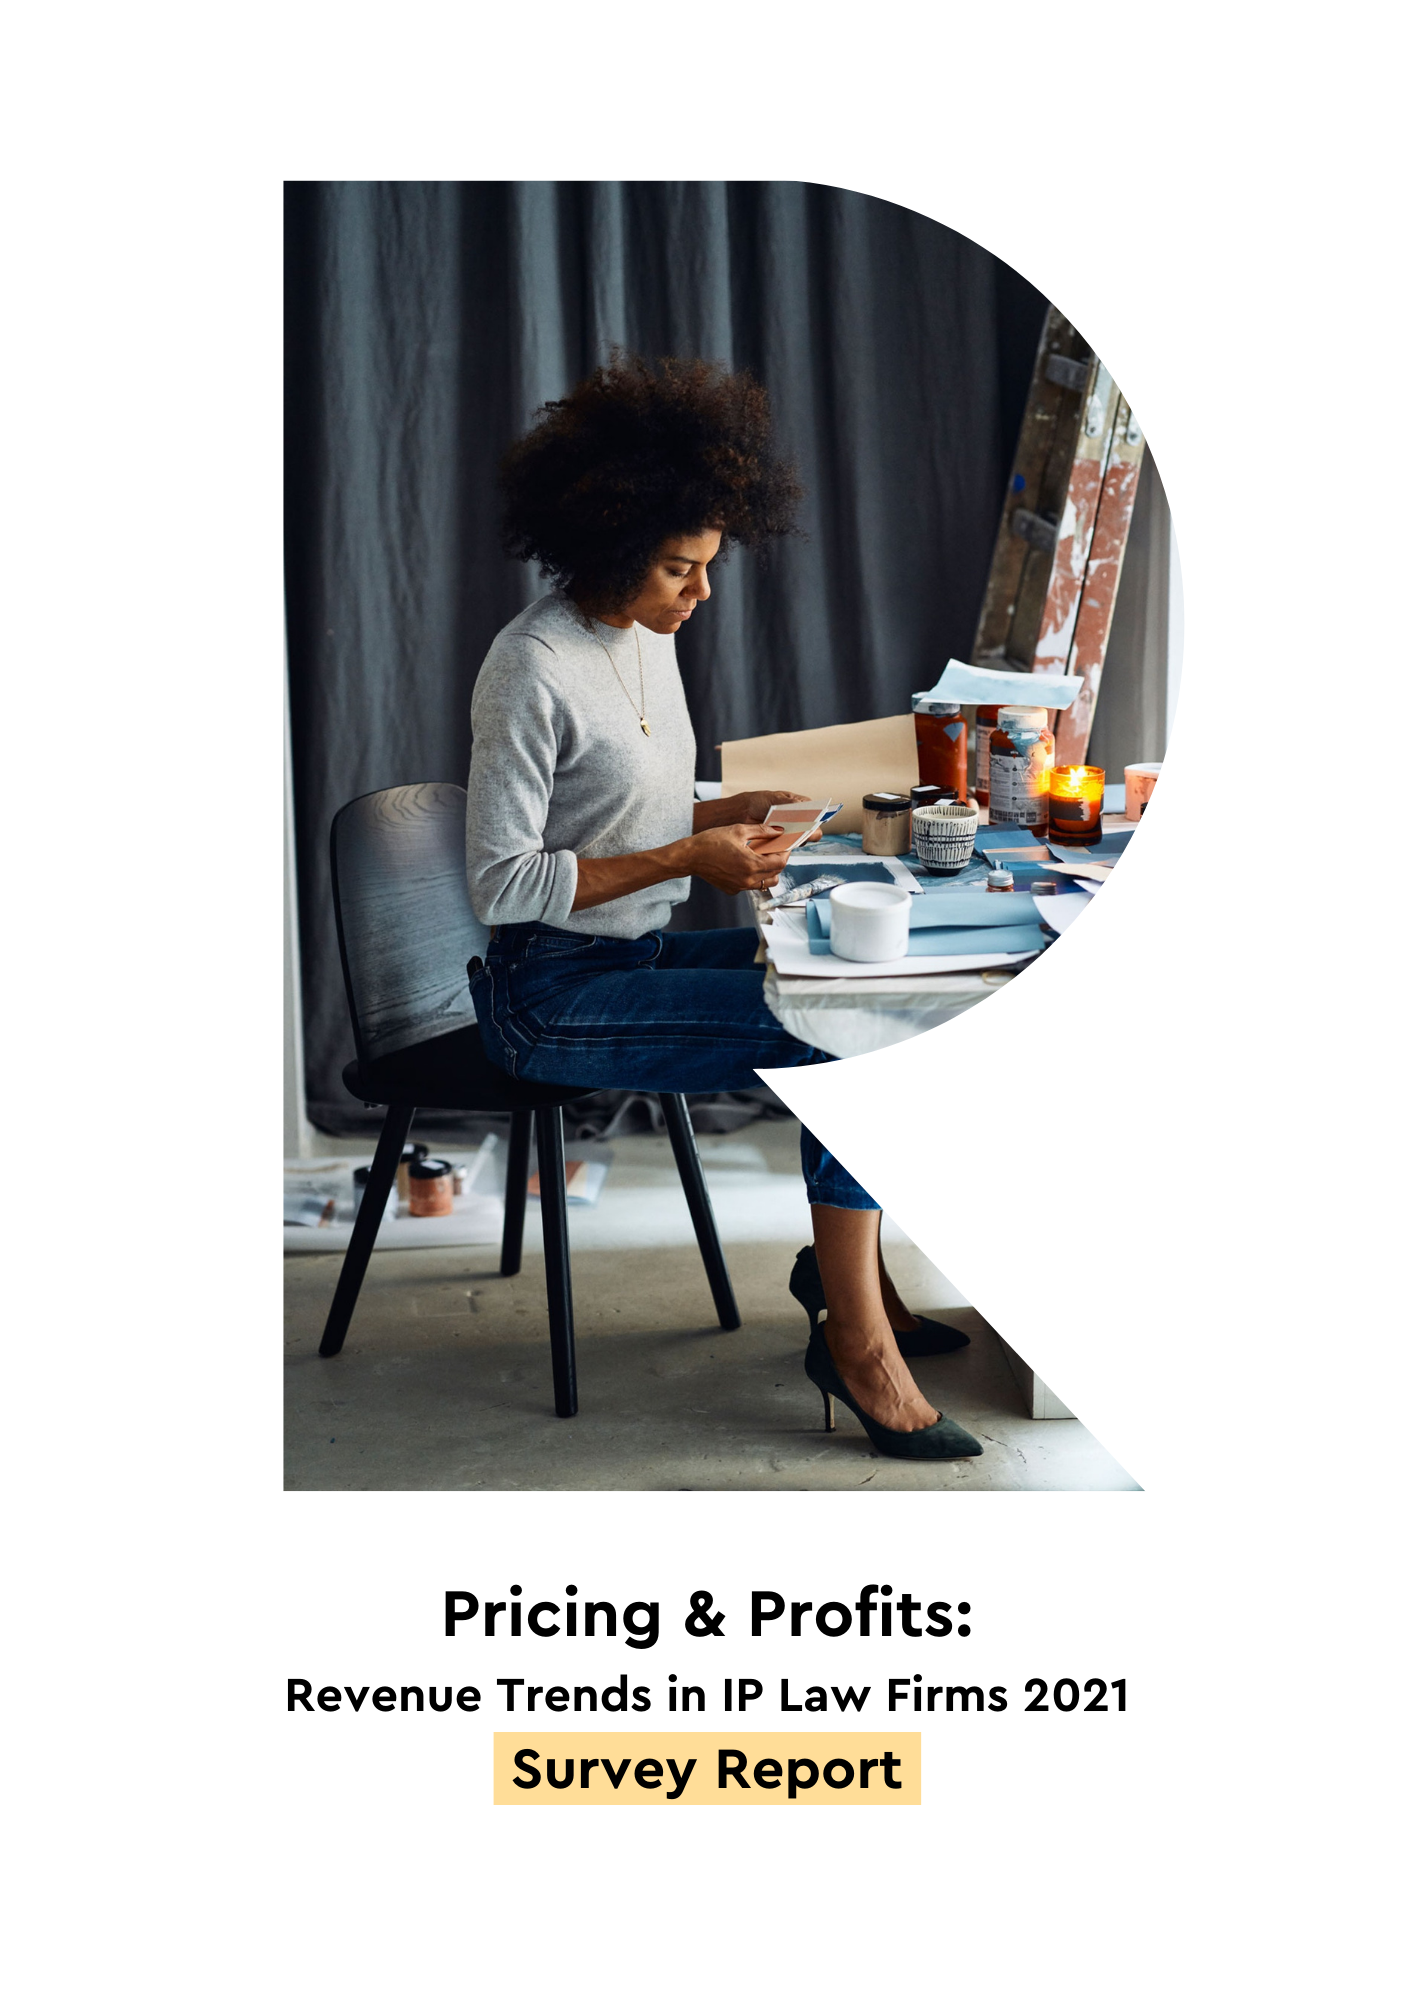 Pricing & Profits Revenue Trends in IP Law Firms (1)